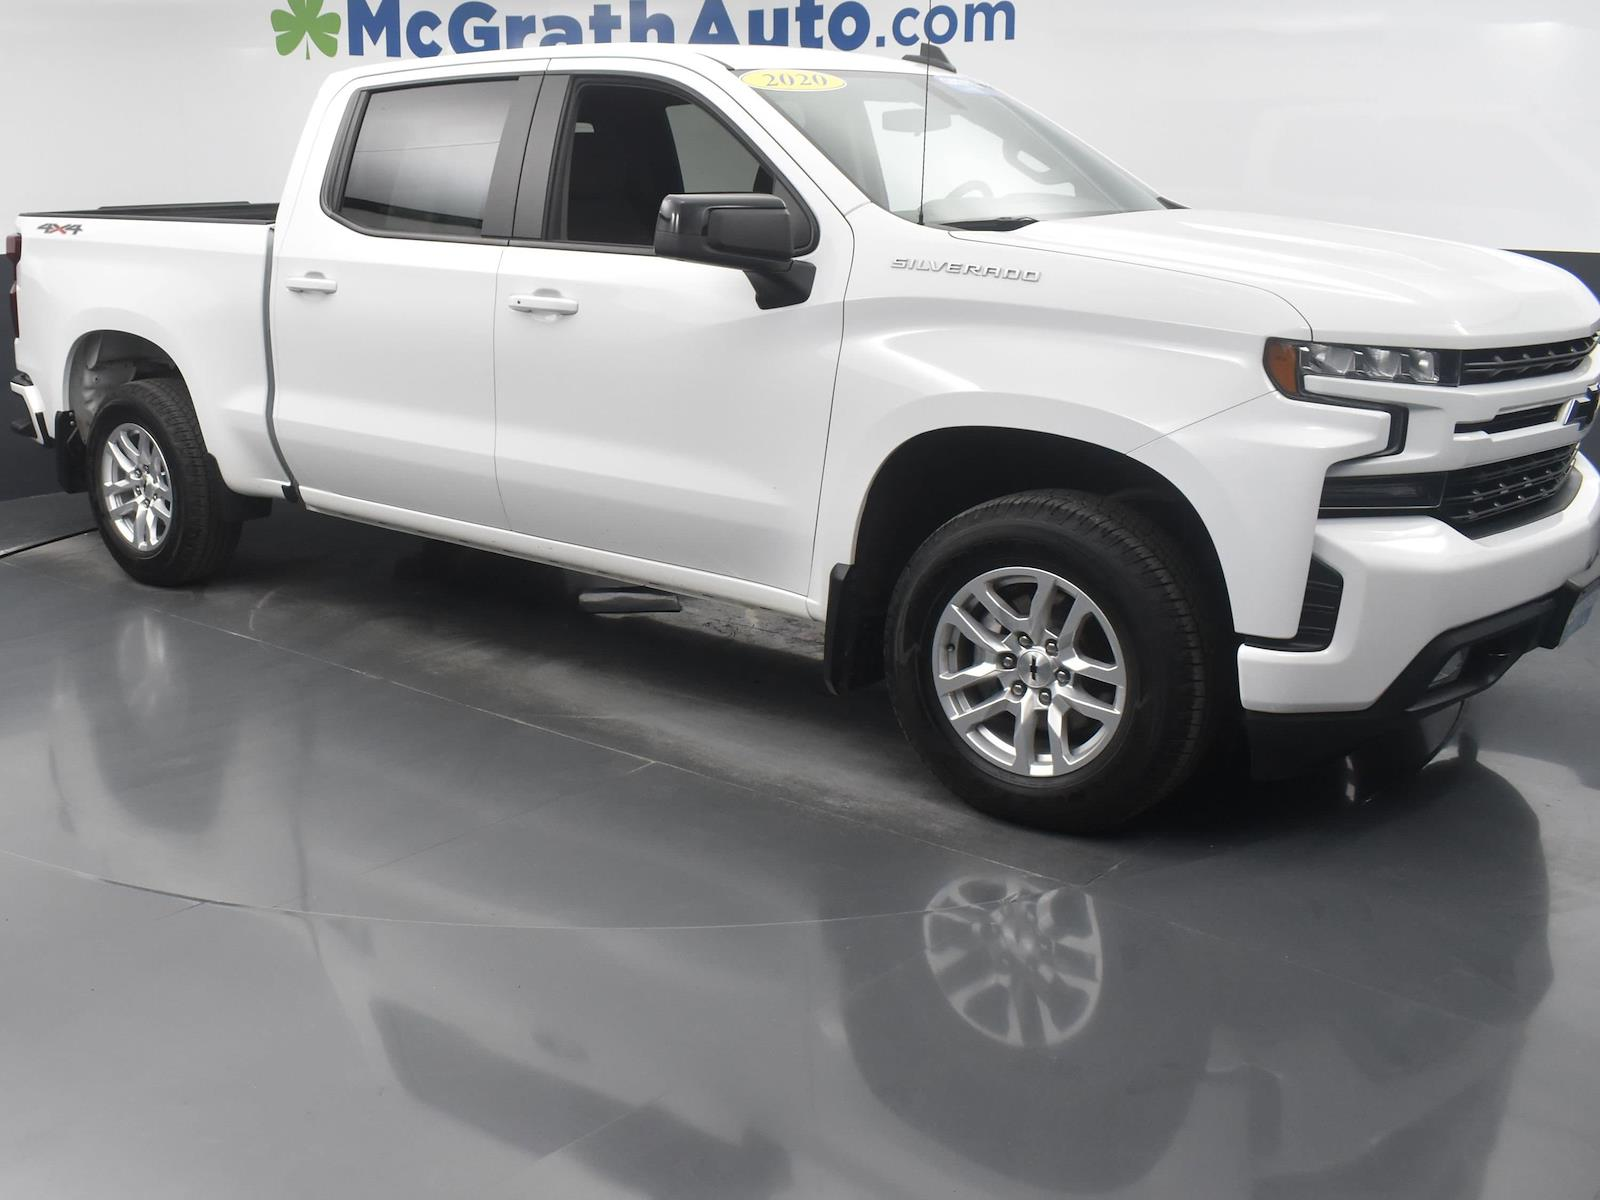 2020 Chevrolet Silverado 1500 Crew Cab 4x4, Pickup #C200871 - photo 1